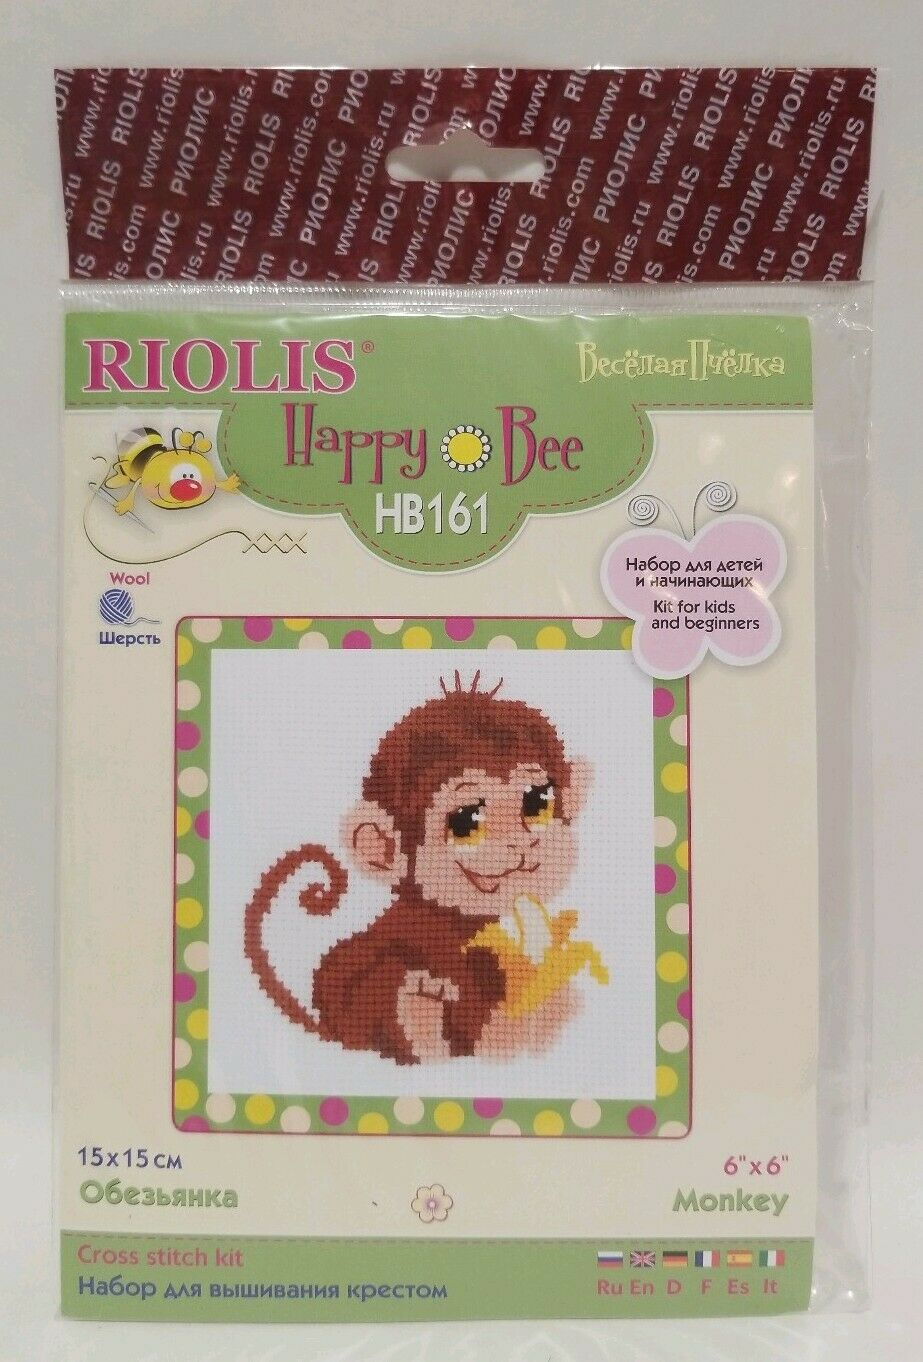 6 x 7 RIOLIS 10 Count Stripes Counted Cross Stitch Kit